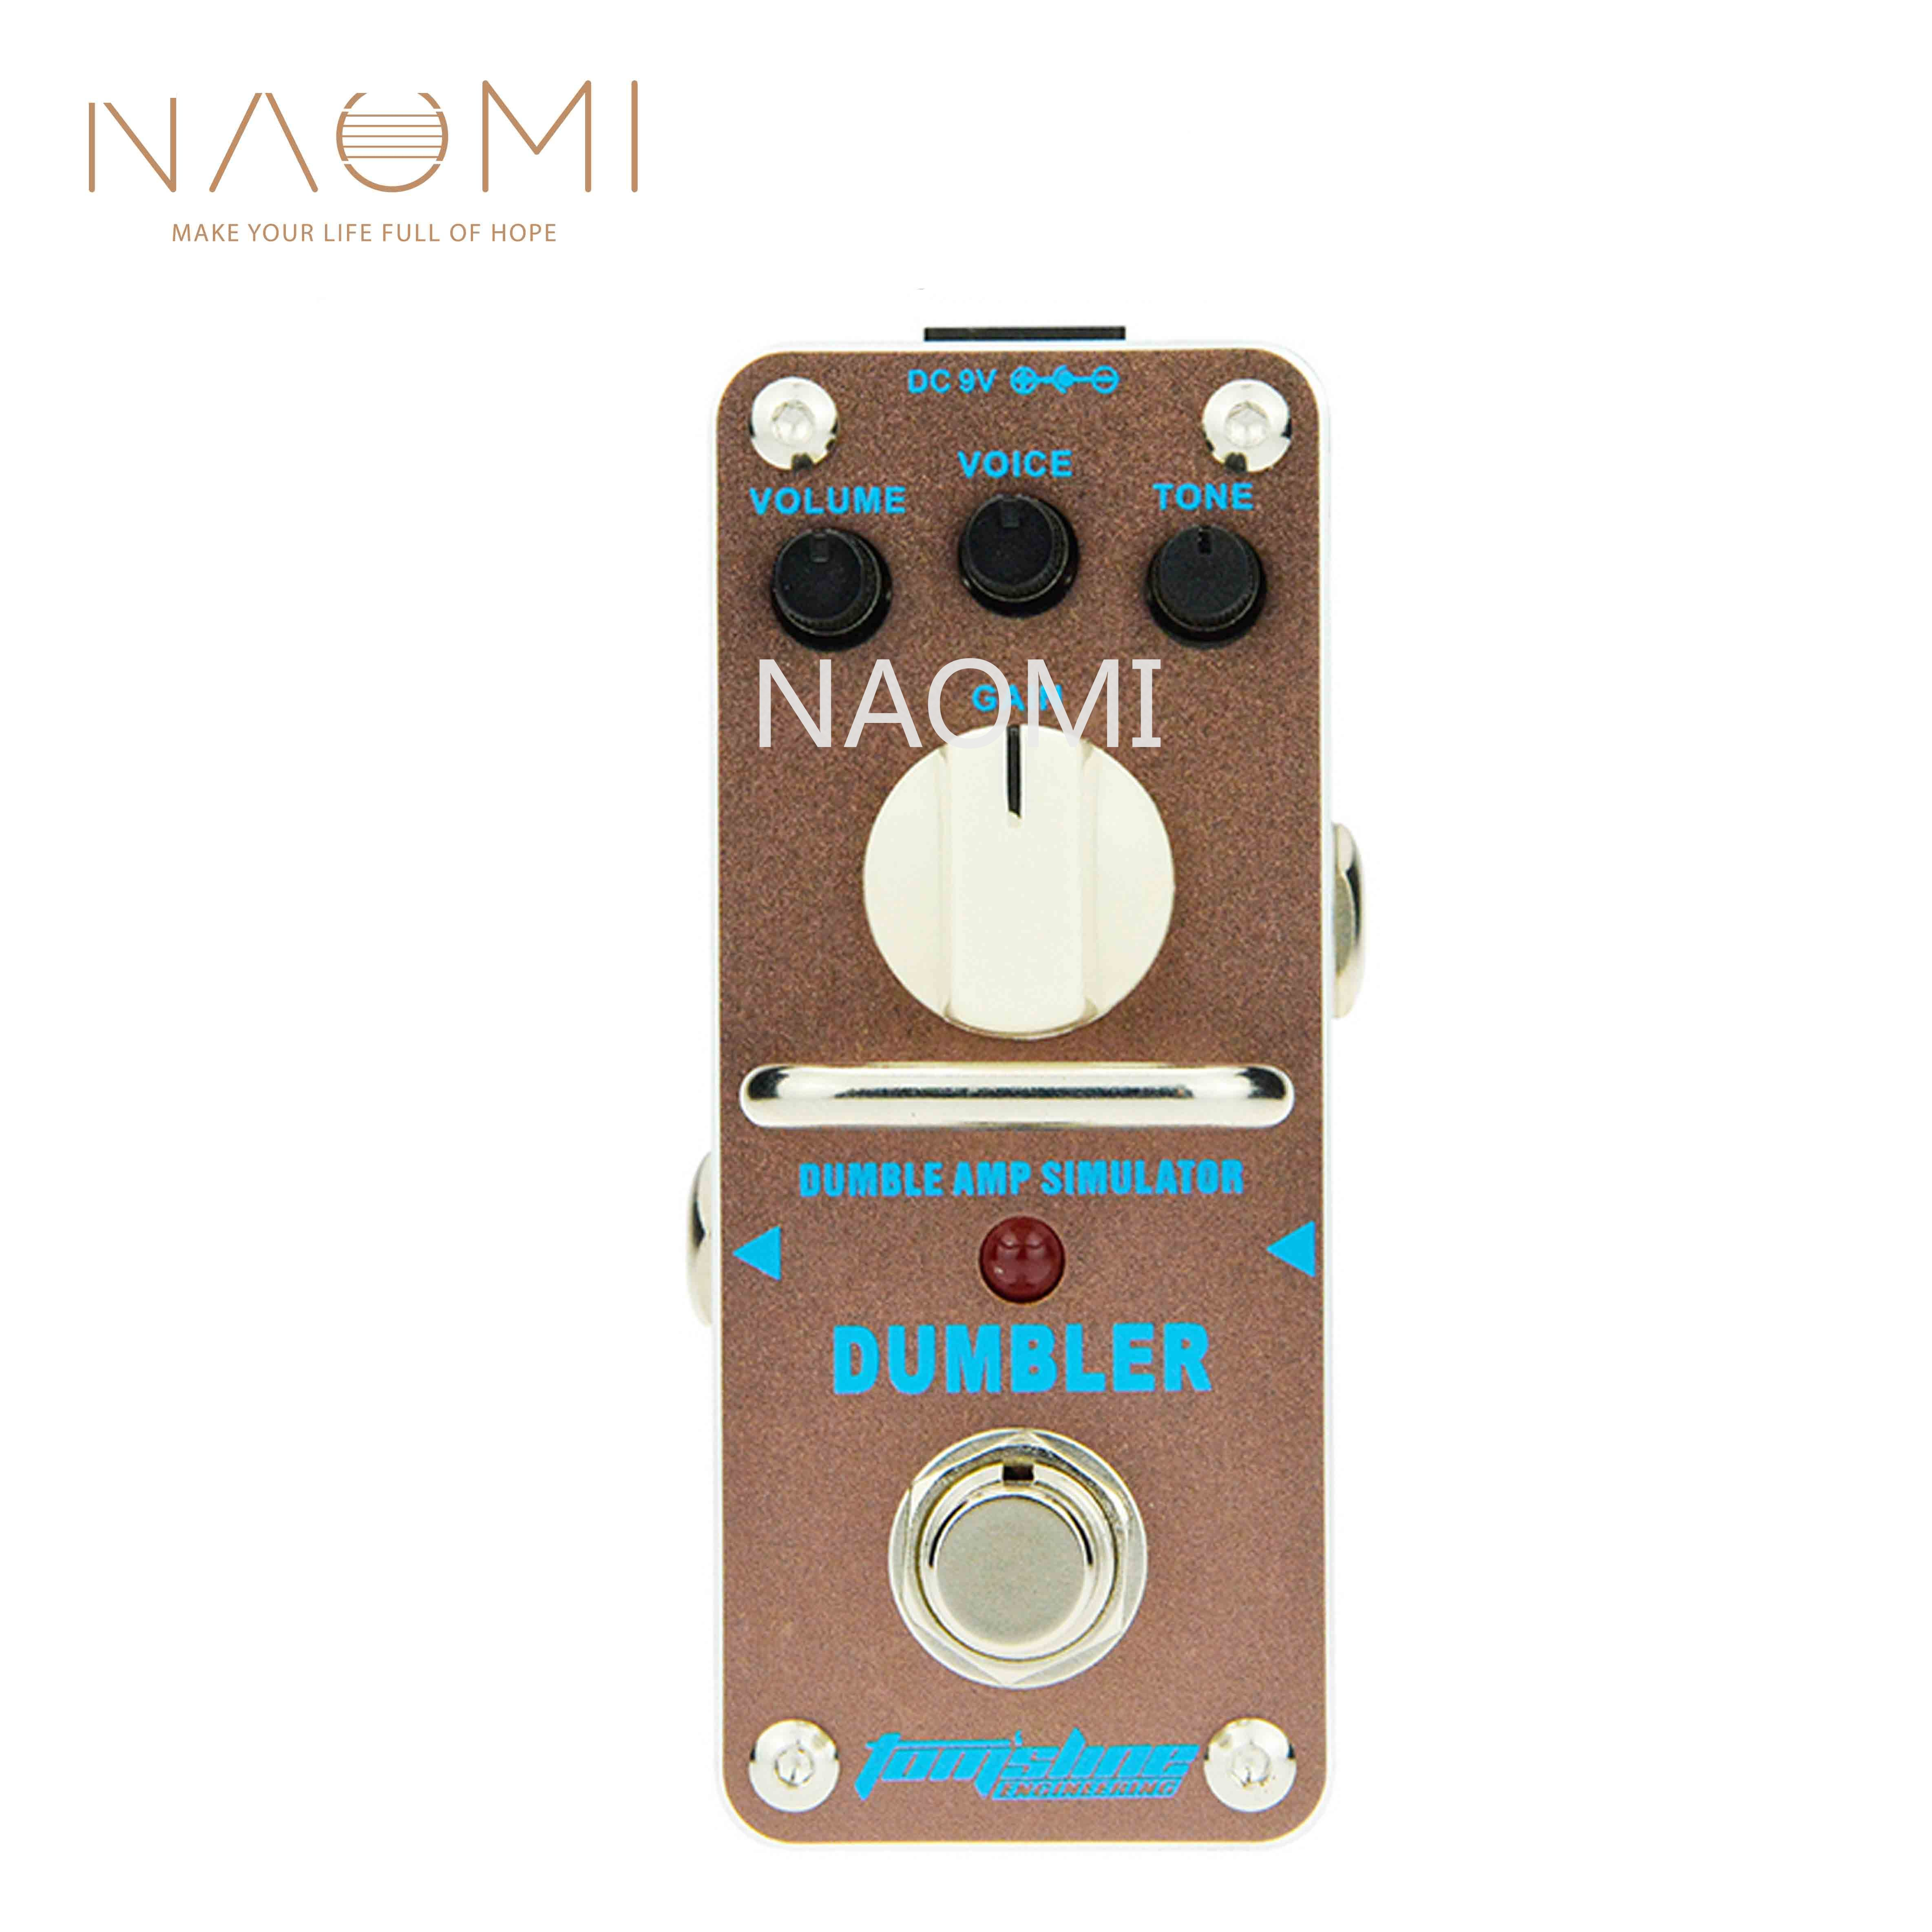 NAOMI Aroma Guitar Effect Pedal ADR 3 Dumbler Based On The Tone Of Legendary Dumble Amp Smooth Dynamic Sound For Electric Guitar